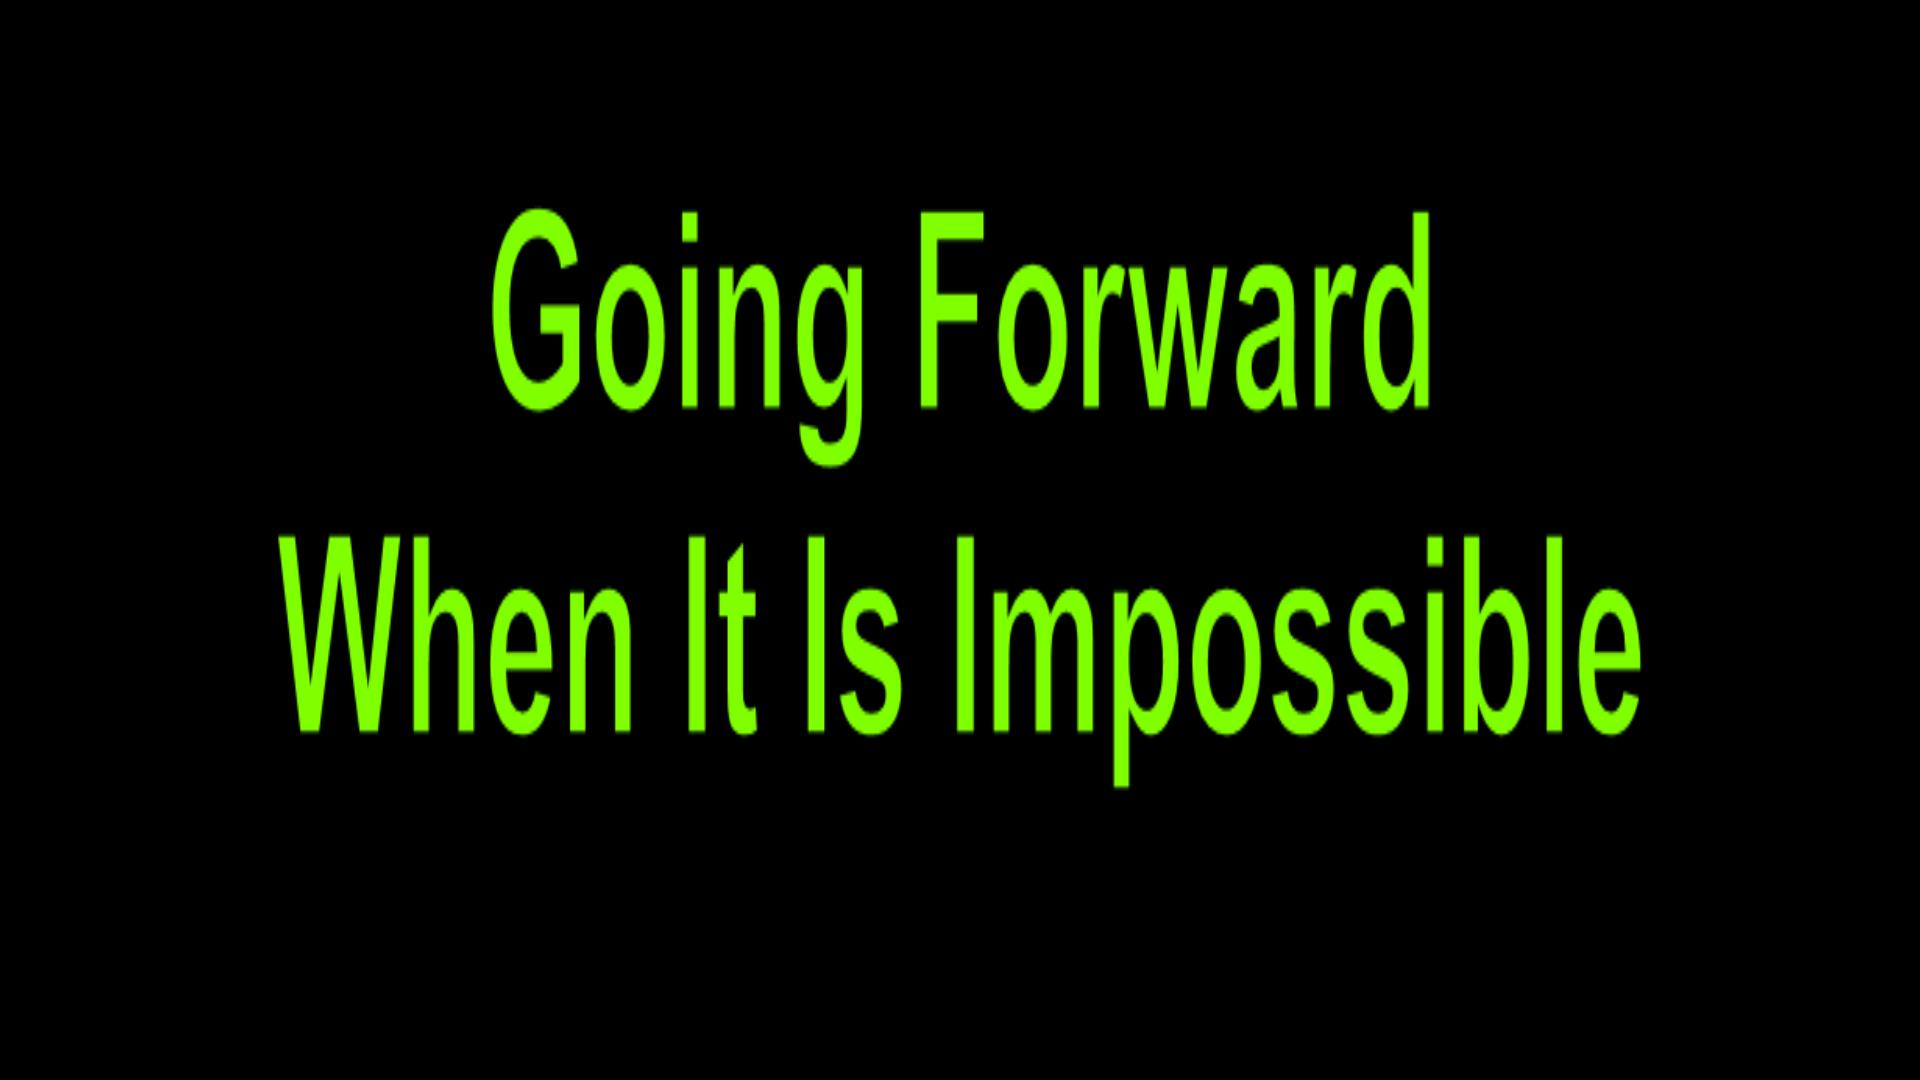 Going Forward, When It Is Impossible